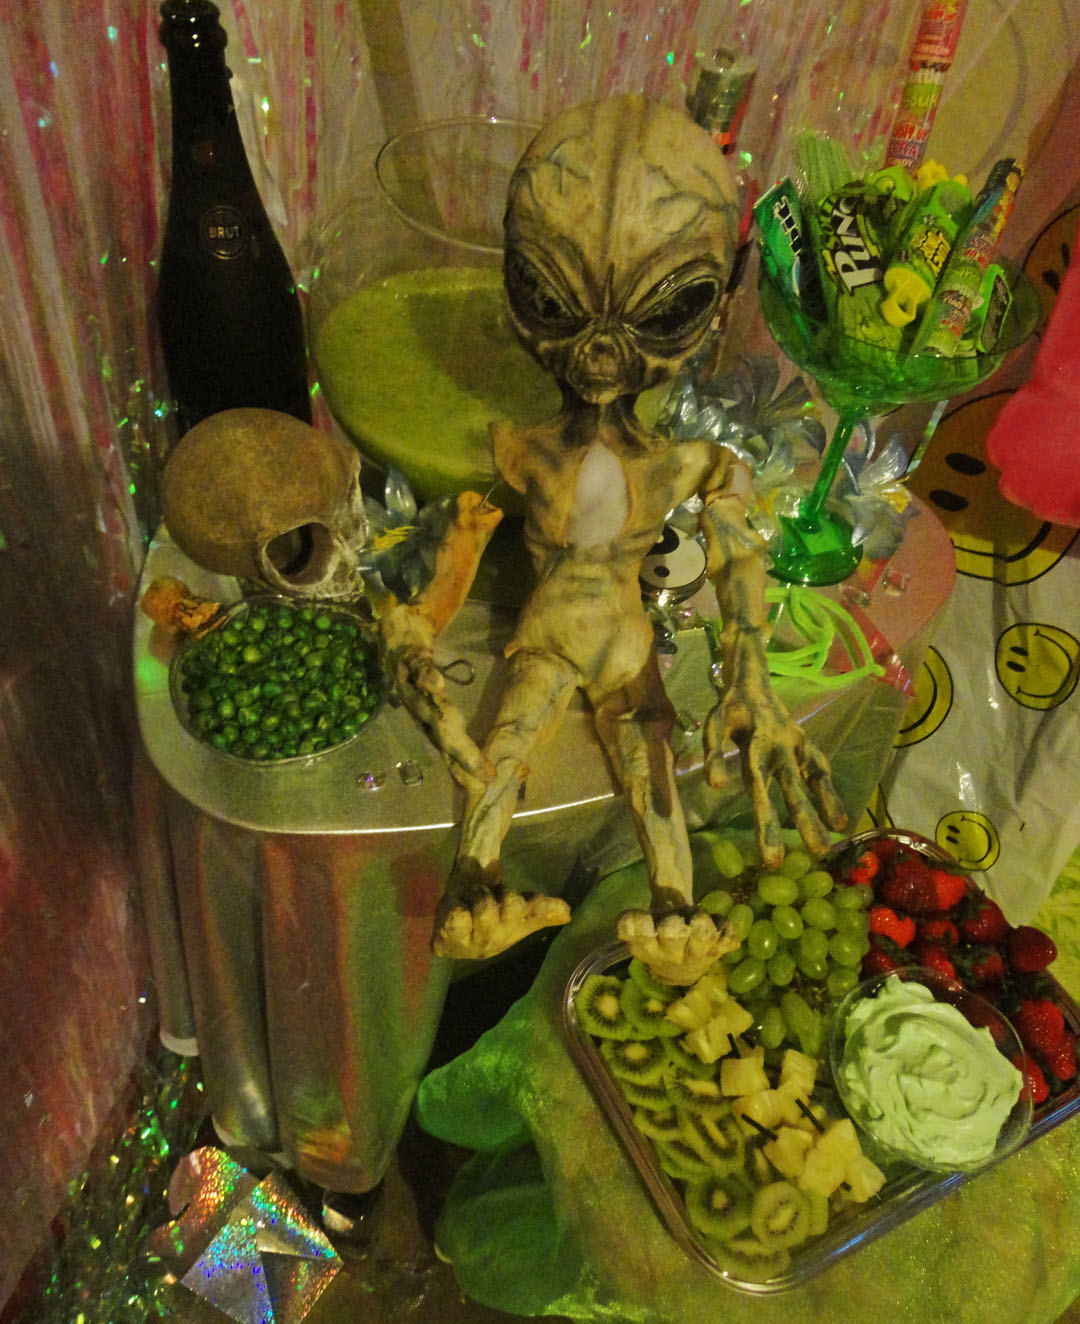 how_aliens_party_311214_3b